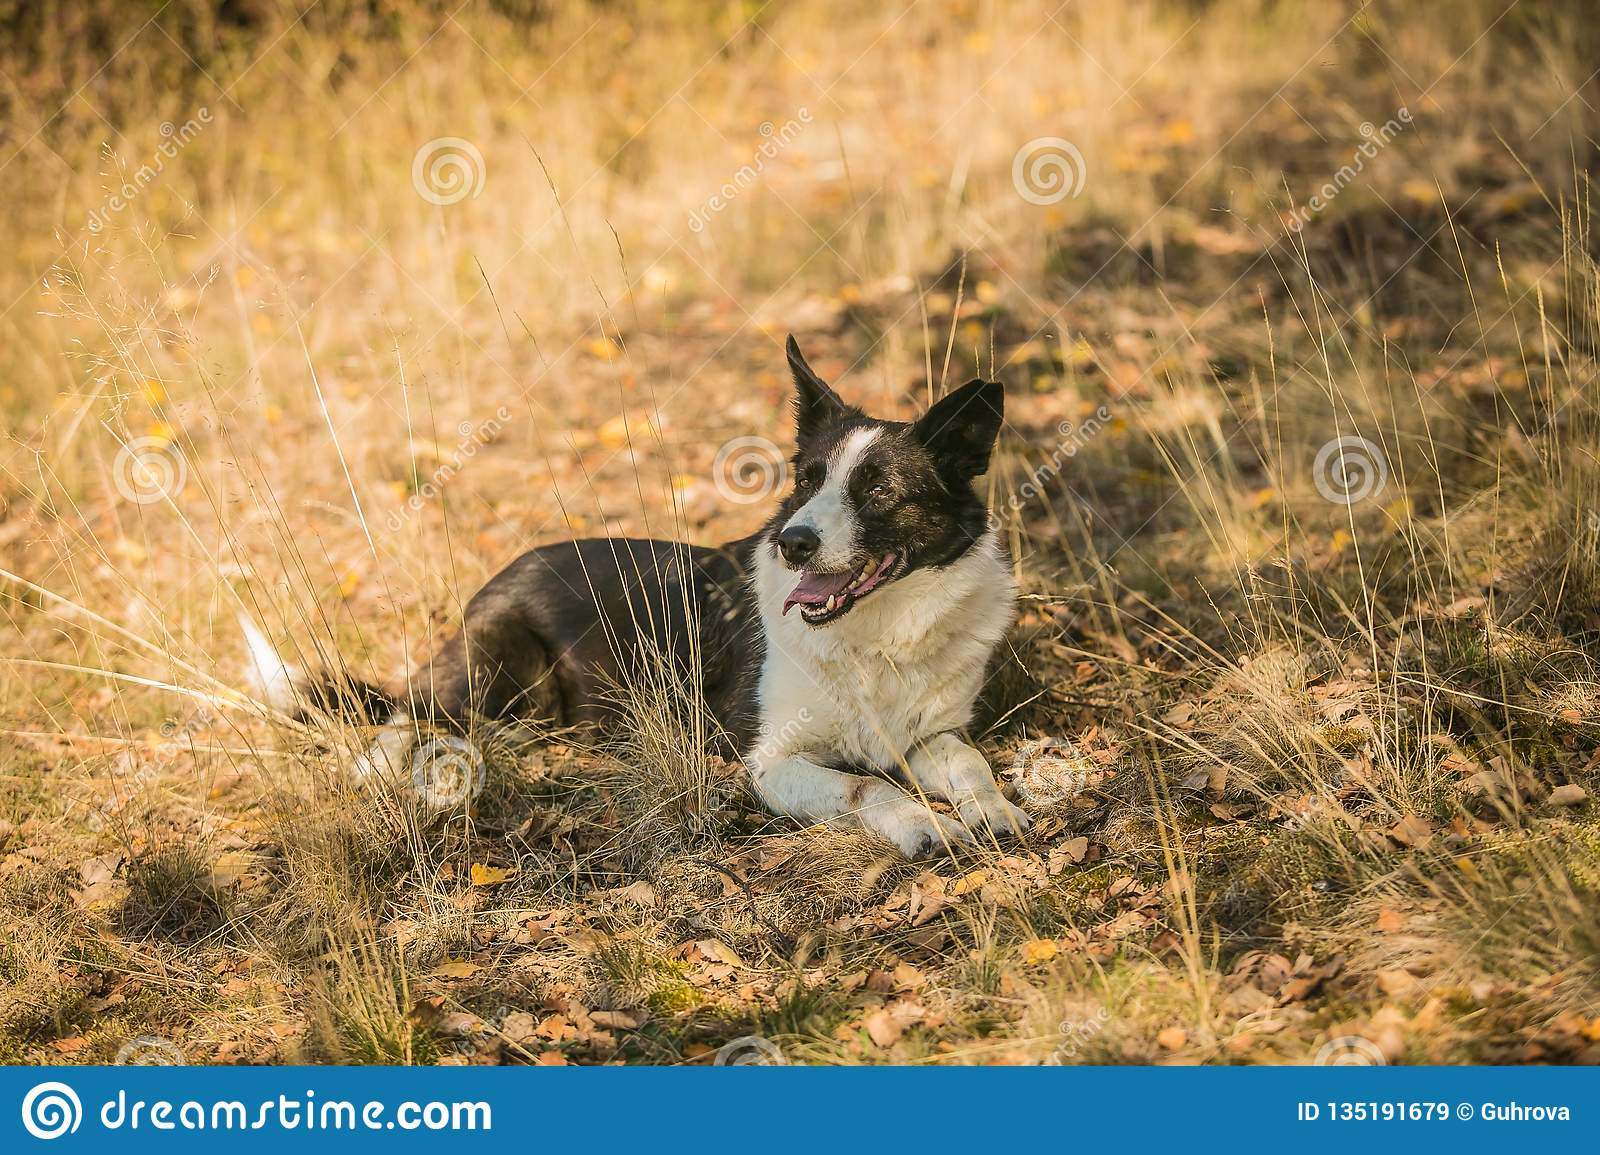 252 Border Collie Dog Laying Down Photos Free Royalty Free Stock Photos From Dreamstime